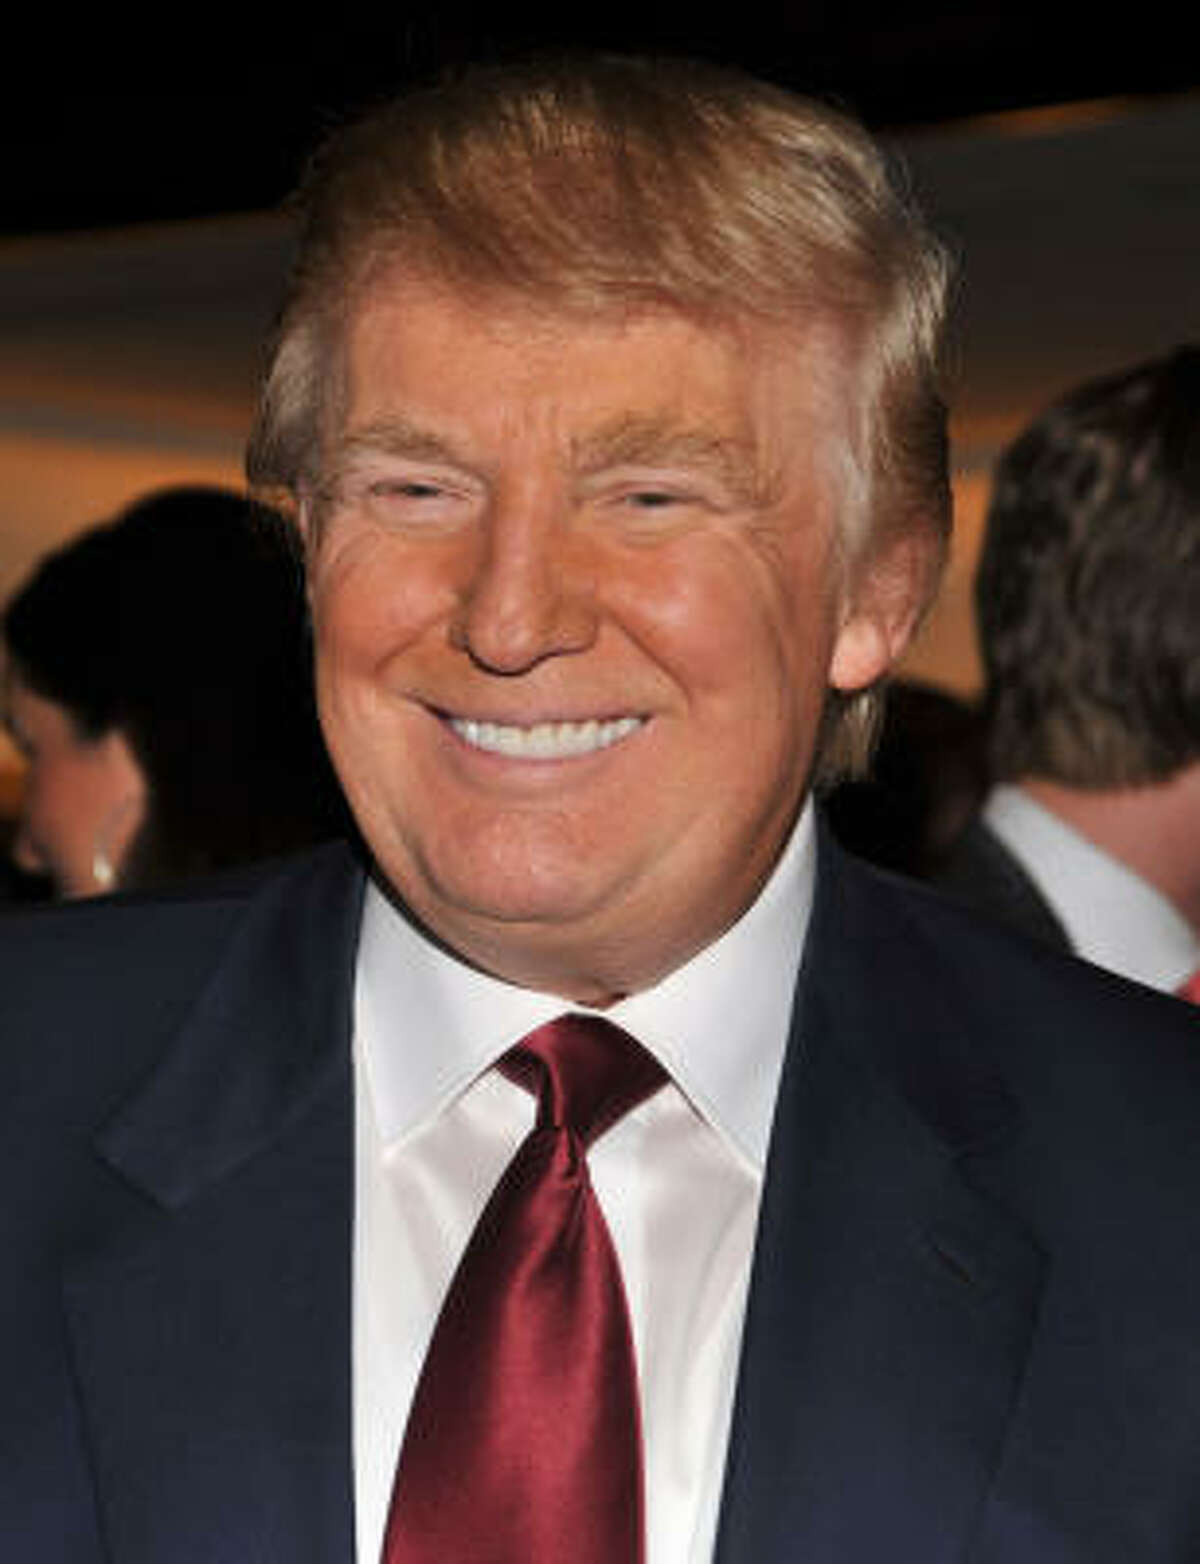 2. Donald Trump (50 million dollars). Read more about how they made their money here.